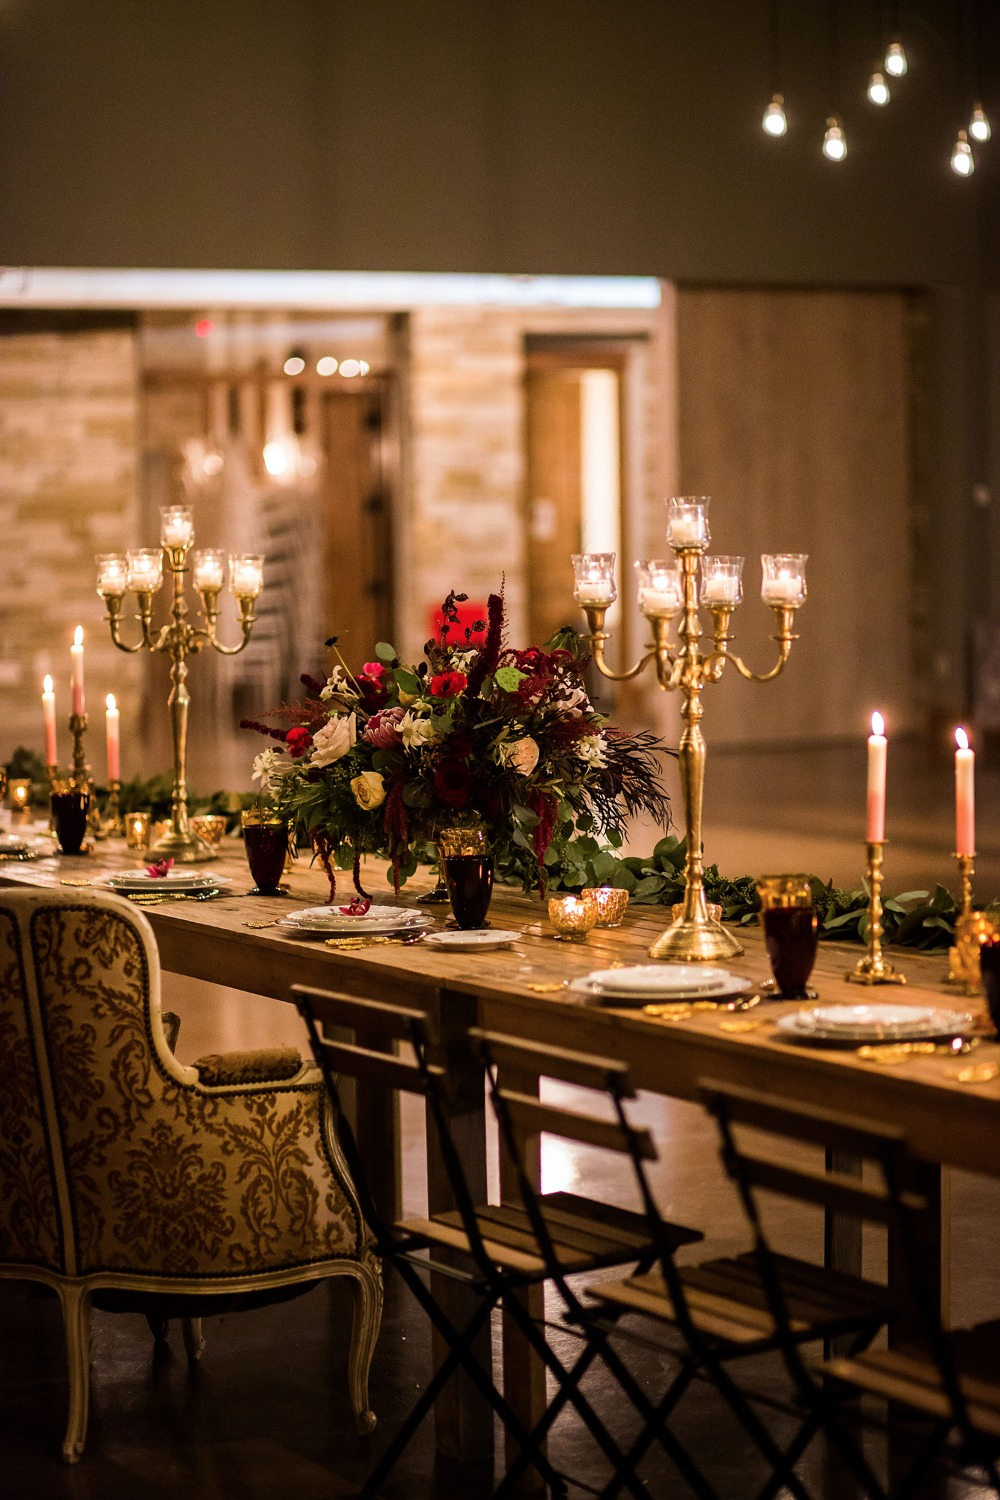 a moody Beauty and the Beast wedding tablescape with candlelabras, gold and burgundy glasses, a lush floral centerpiece and a greenery runner